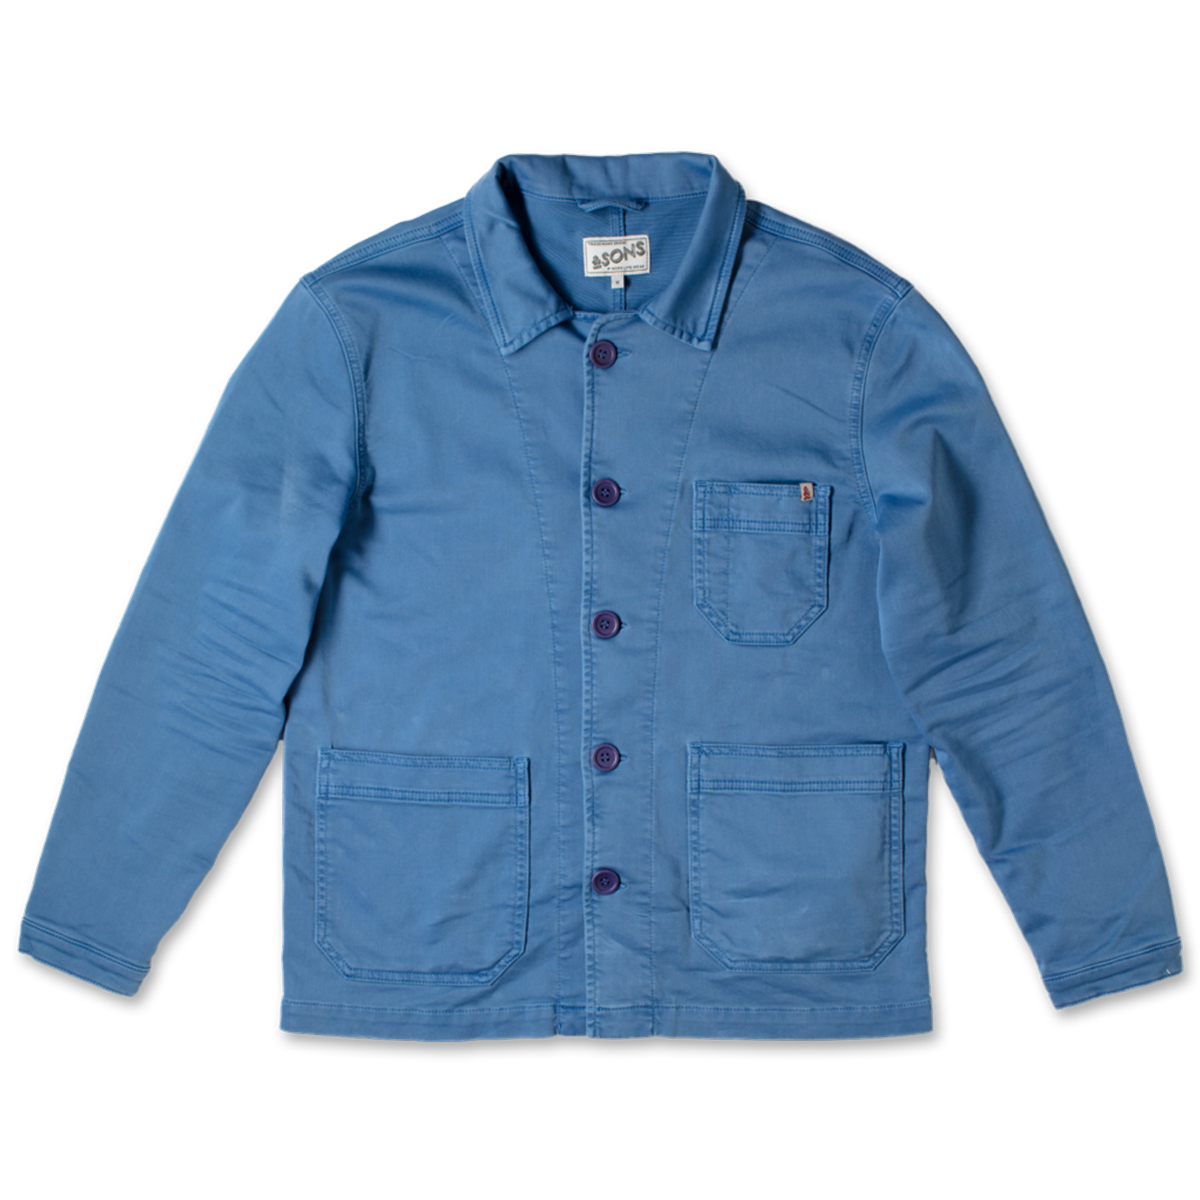 BBOLT-1, &SONS, Blue Bolt Chore Jacket, Blue, Blue Work Jacket | Classic Jacket | French Work Jacket